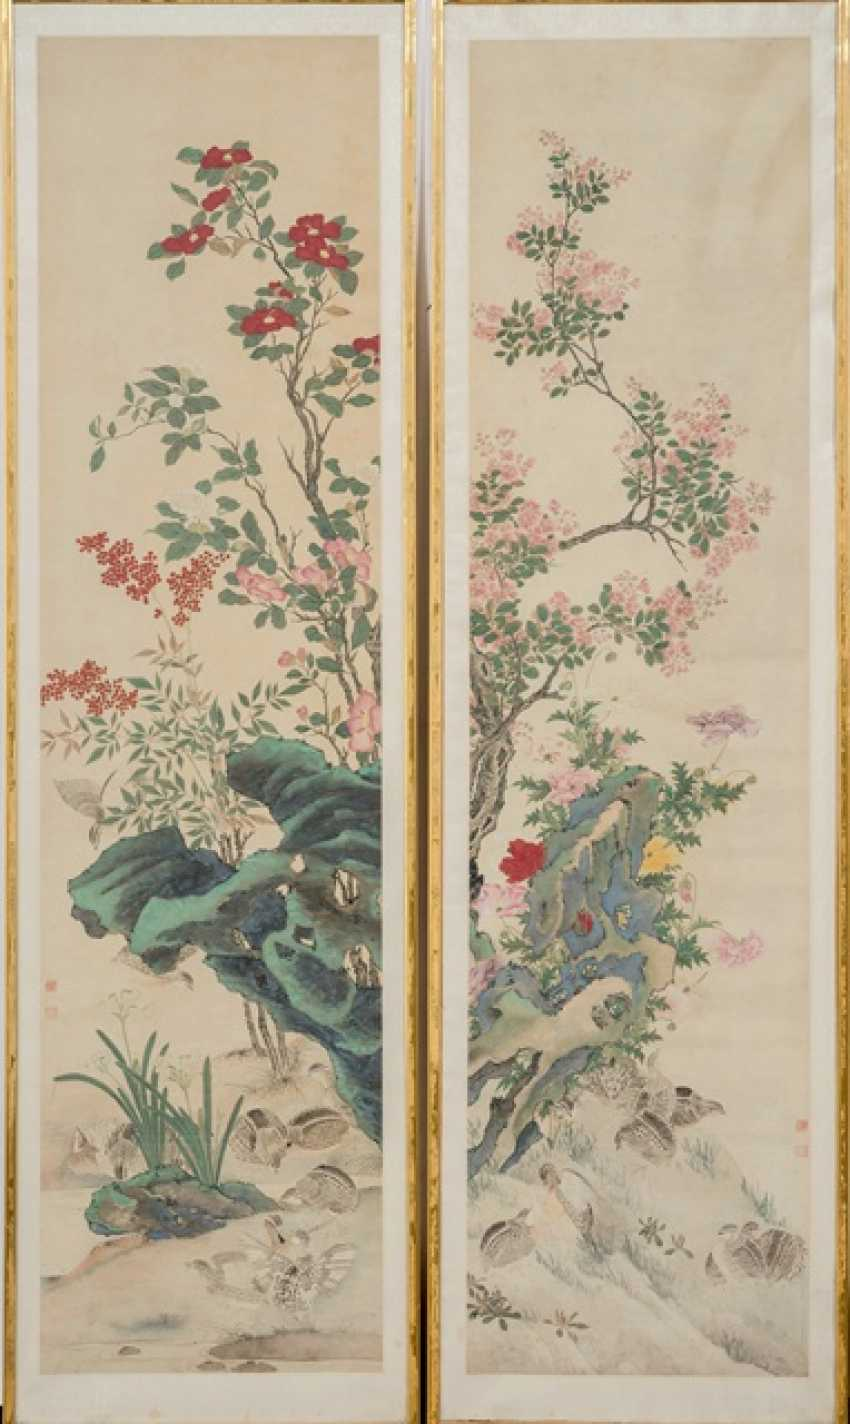 Series of four paintings with quail among the flowers of the four seasons - photo 1